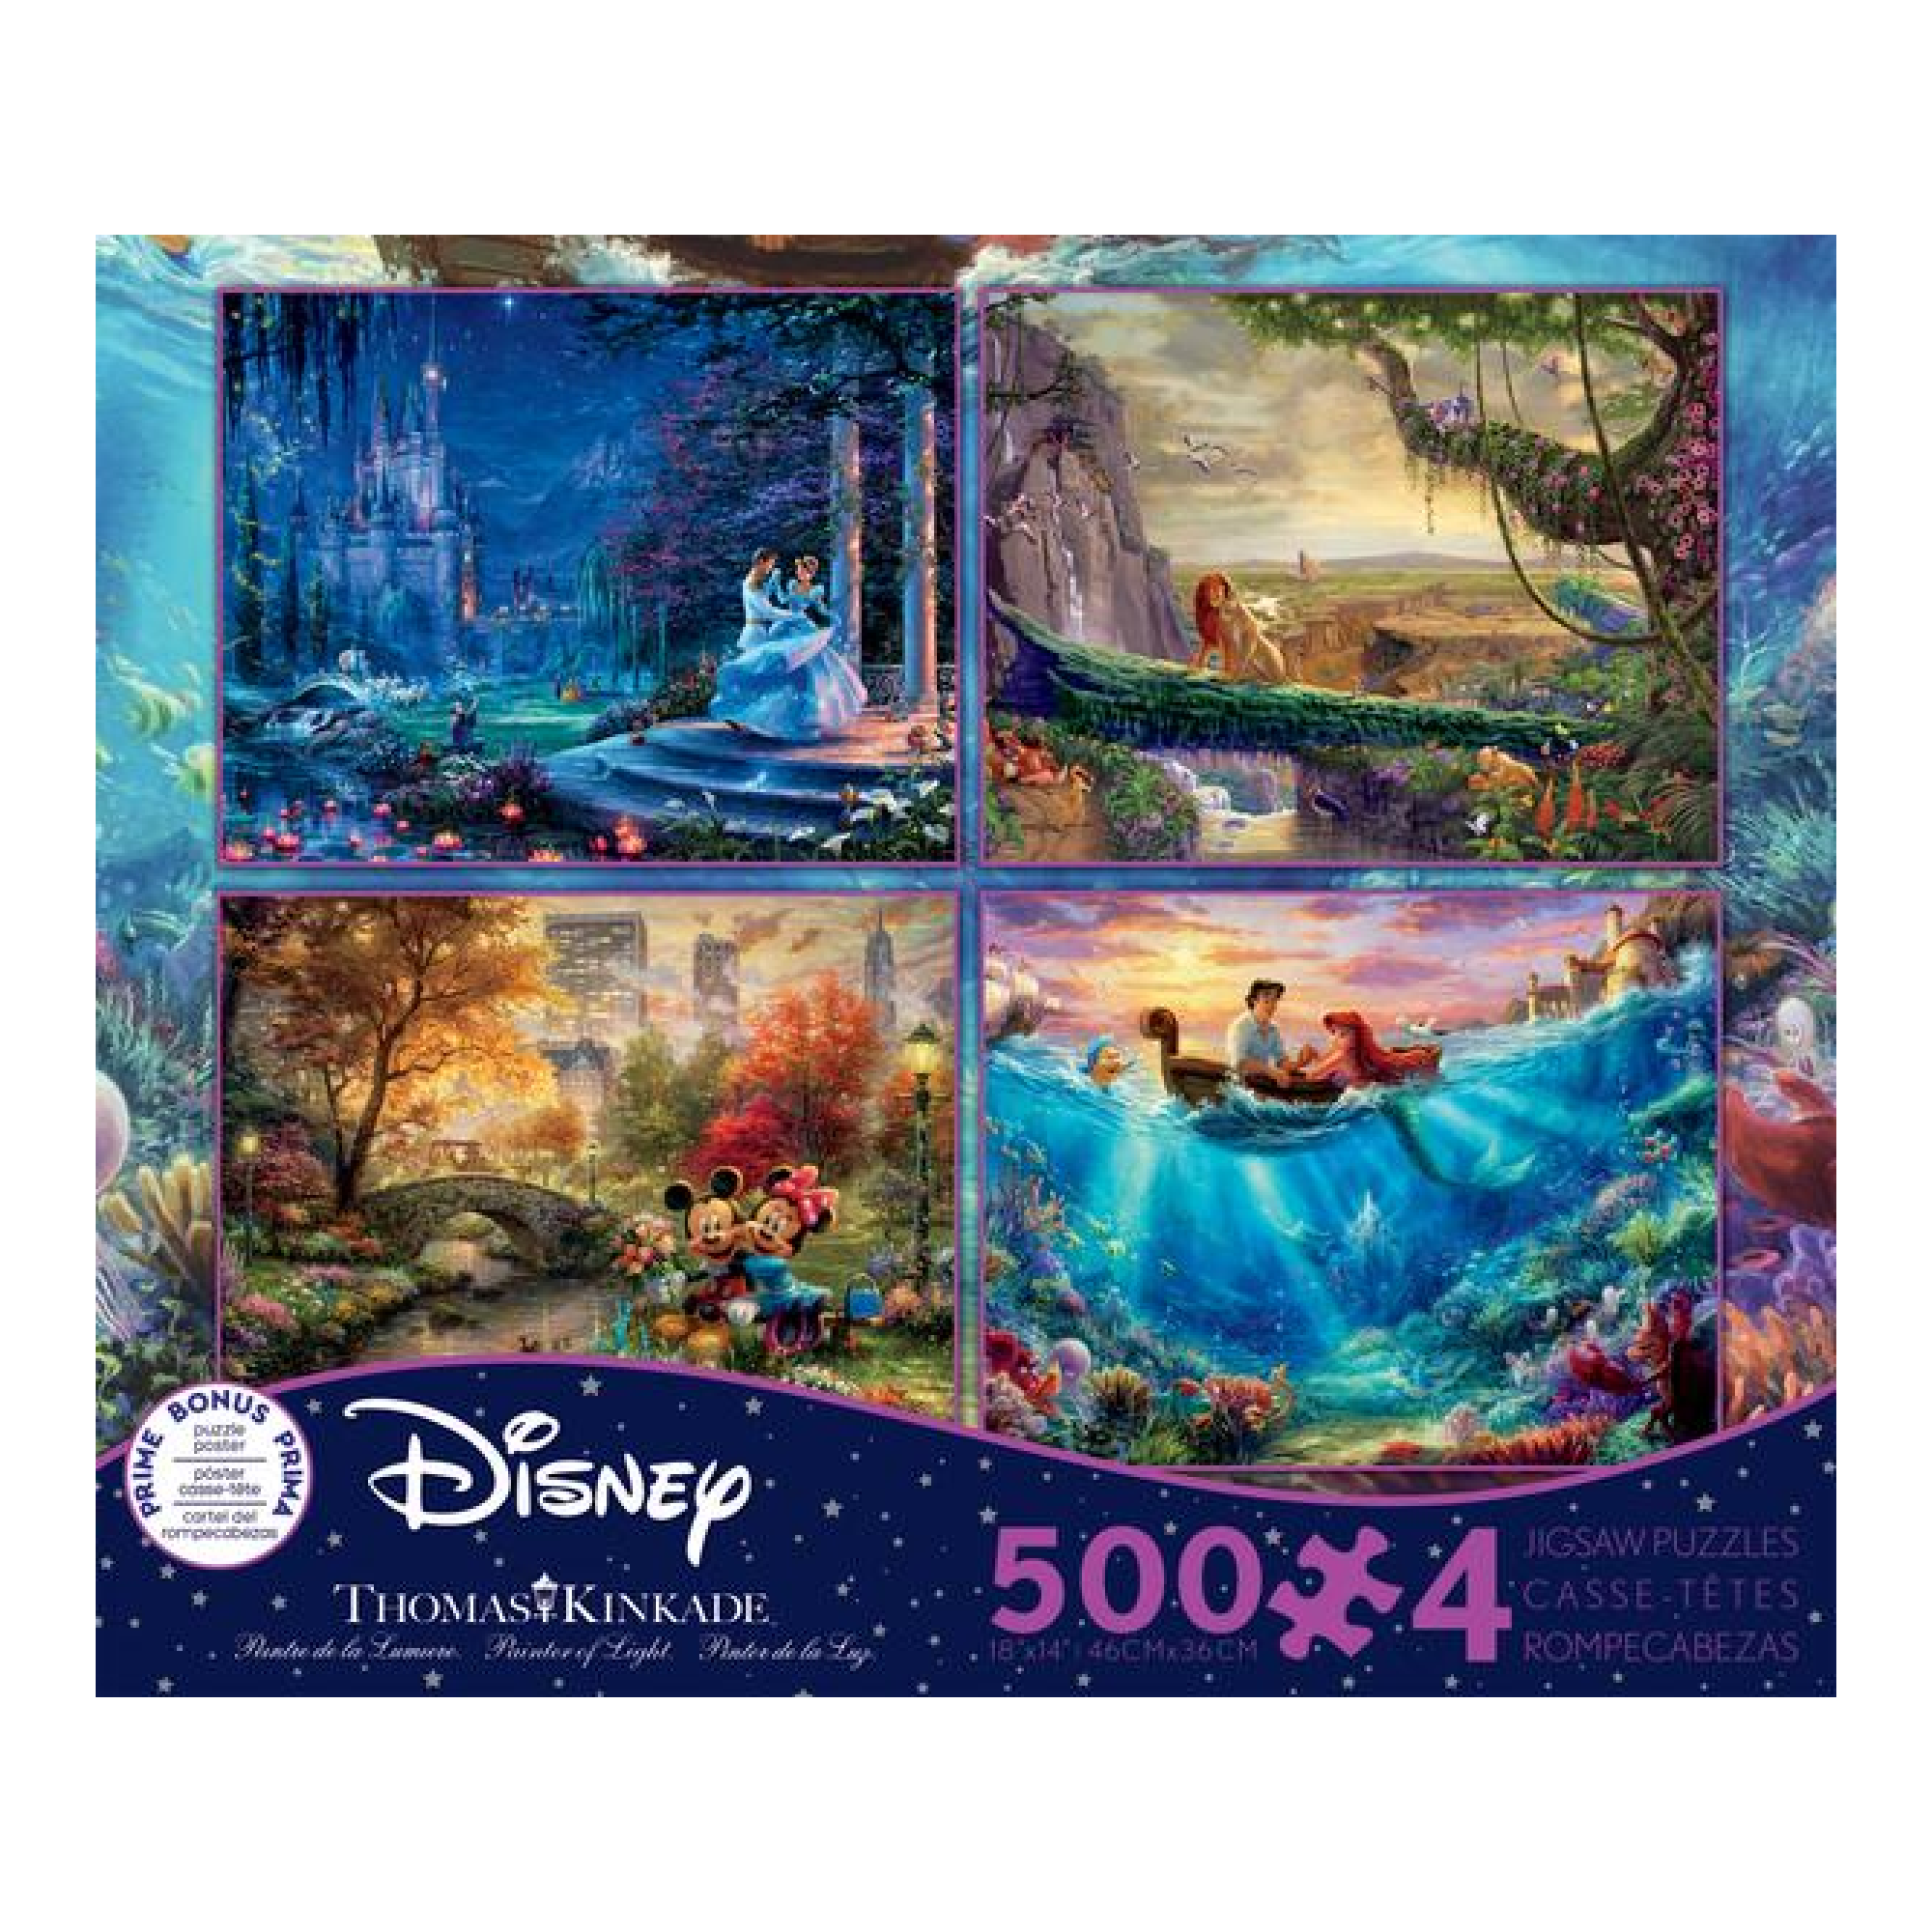 Made in USA Puzzle 500 4 in 1: Thomas Kinkade, Disney Dreams Collection #2